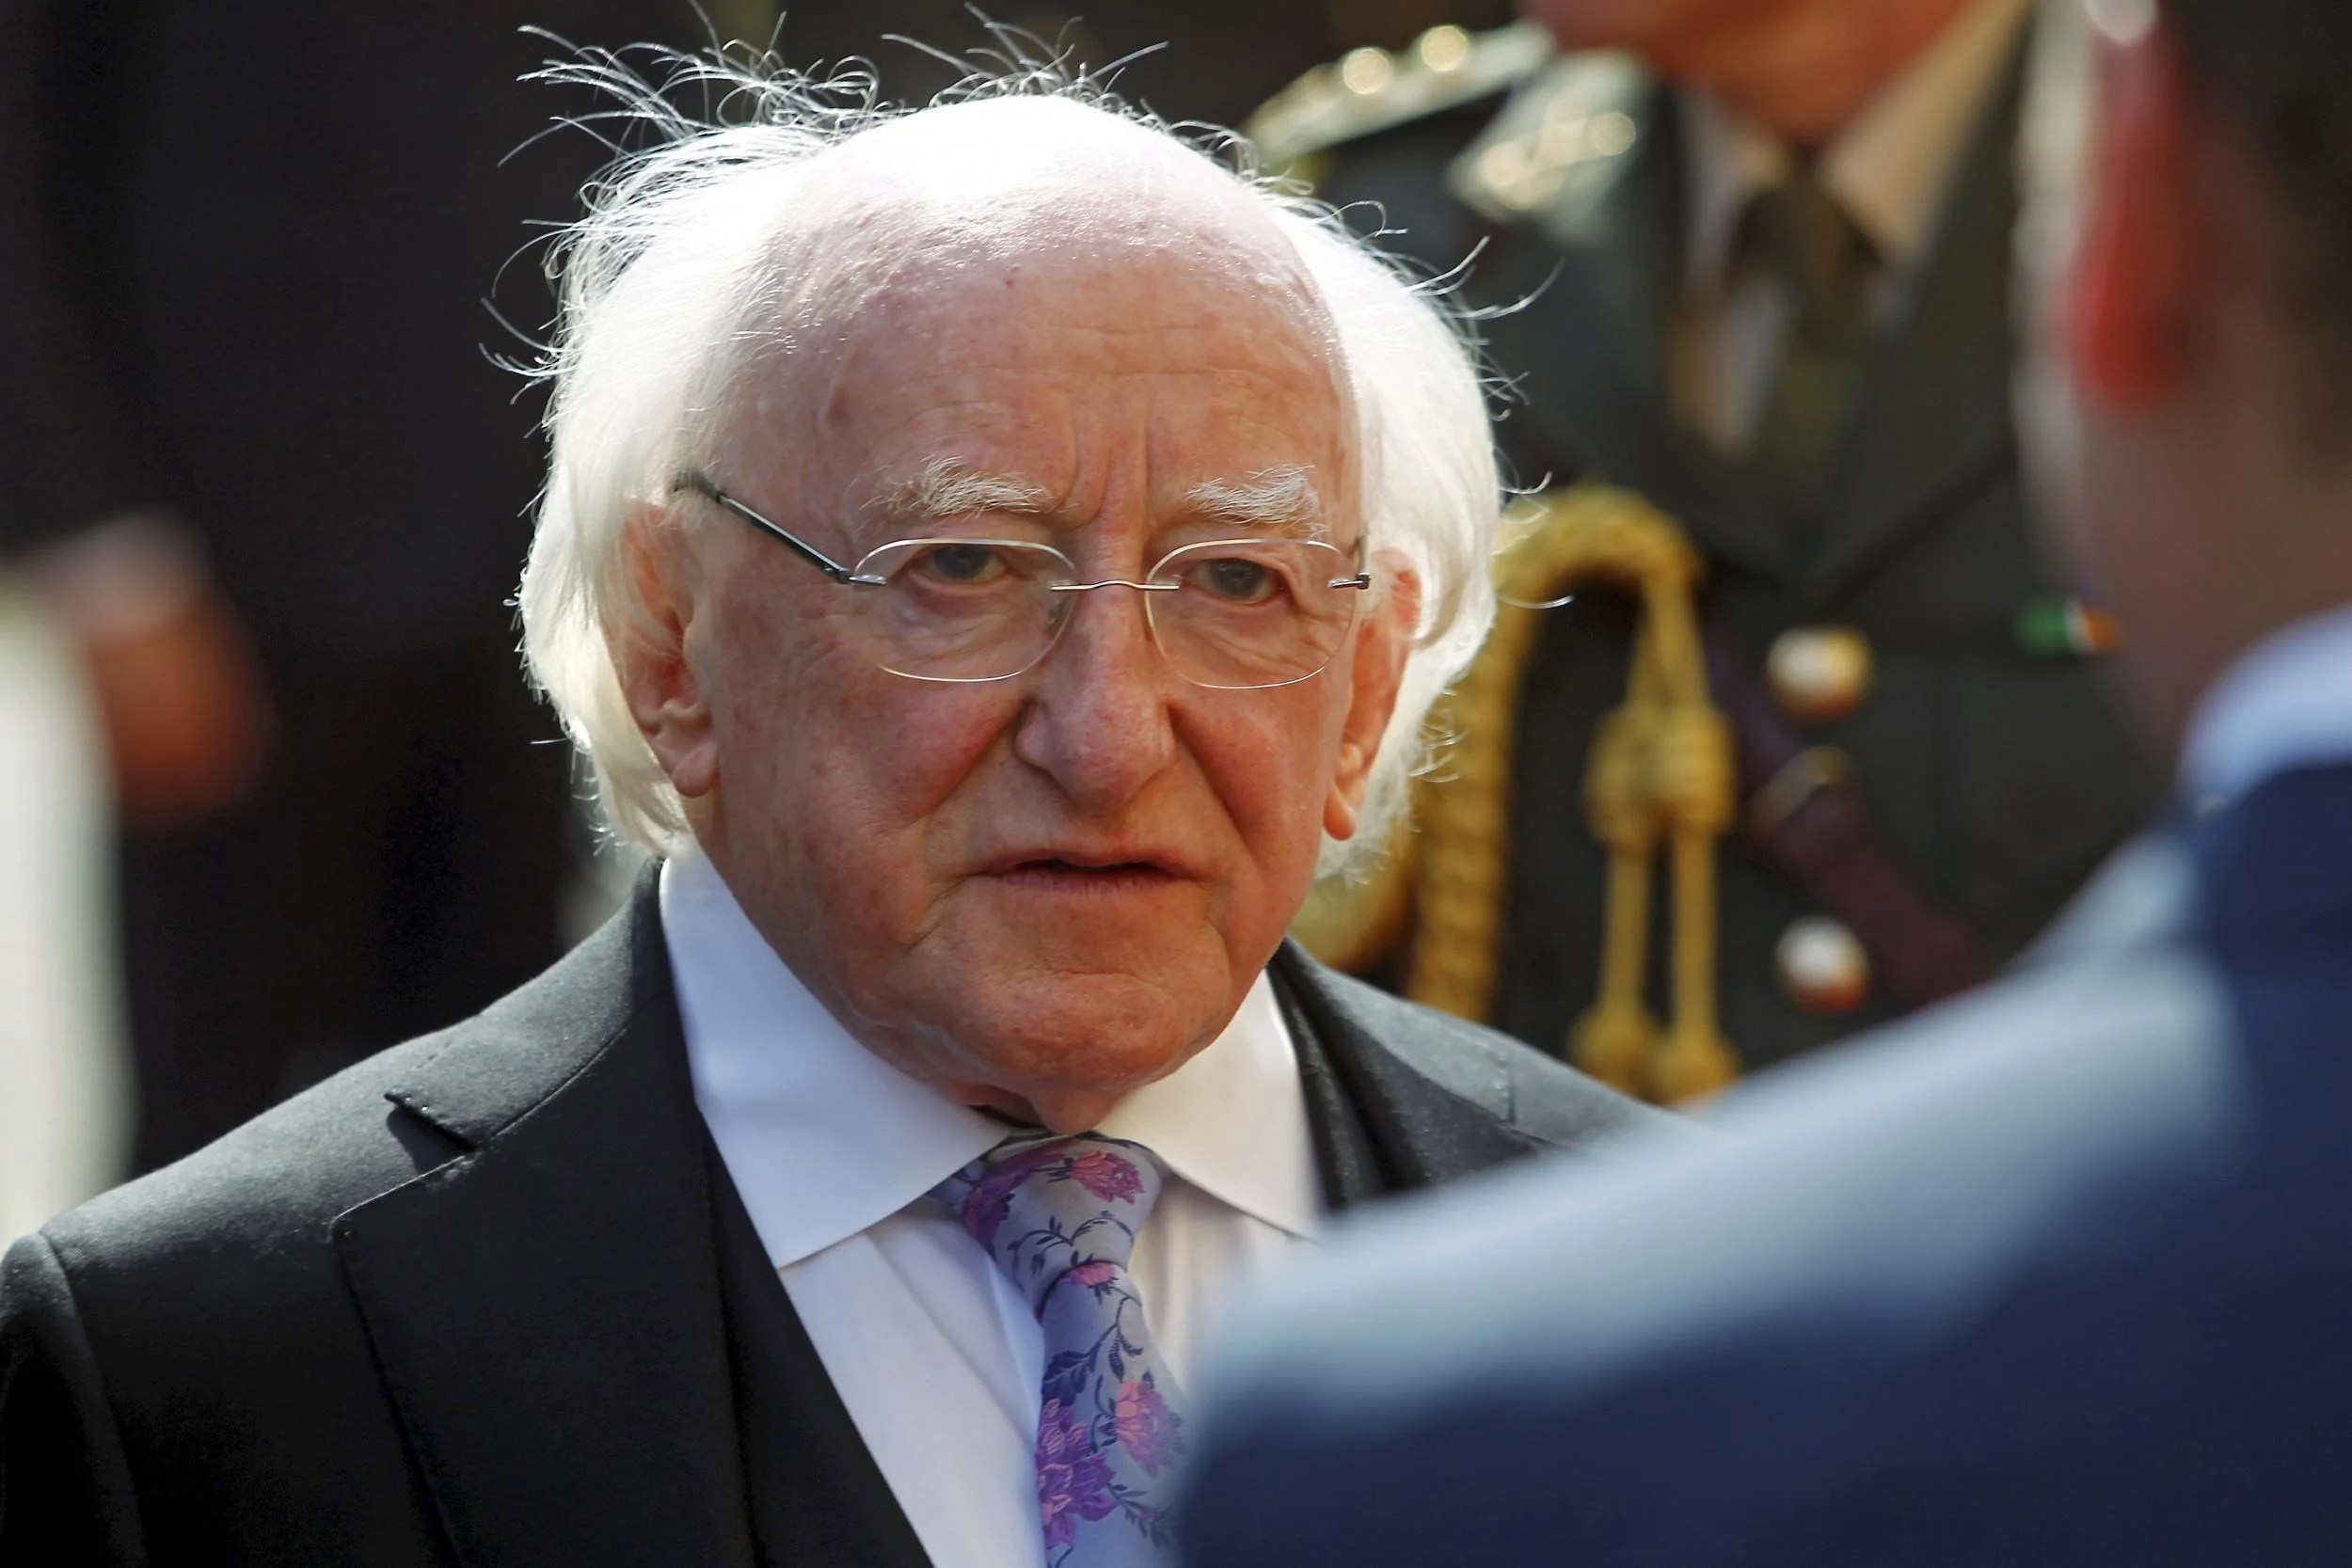 Irish presidential election 2018  Who is incumbent Michael D Higgins     Michael D Higgins has served as President of Ireland since 2011